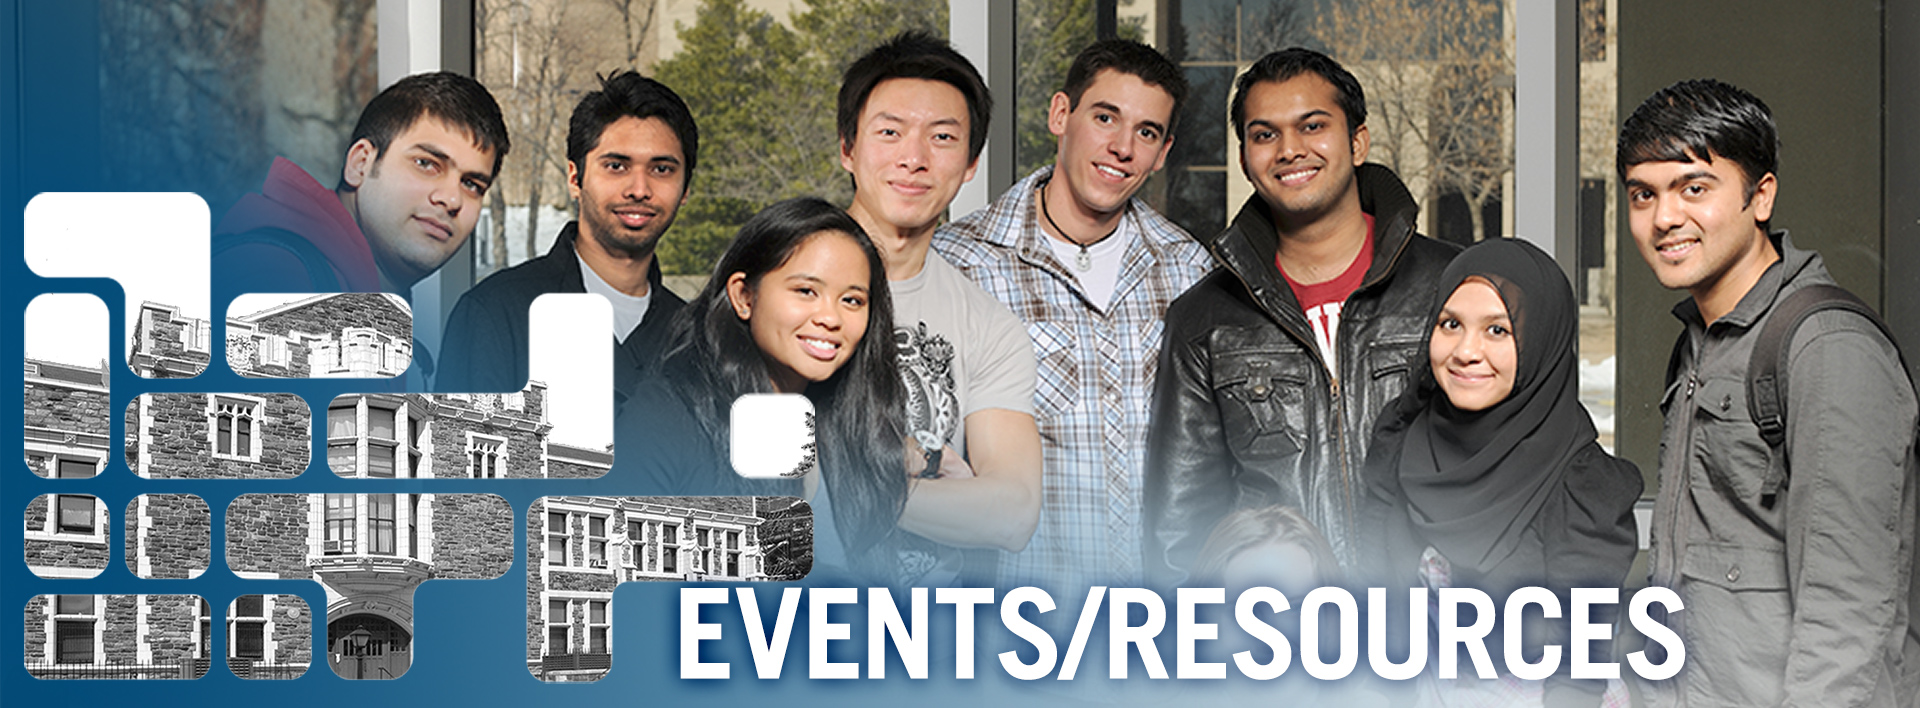 Events and Resources header